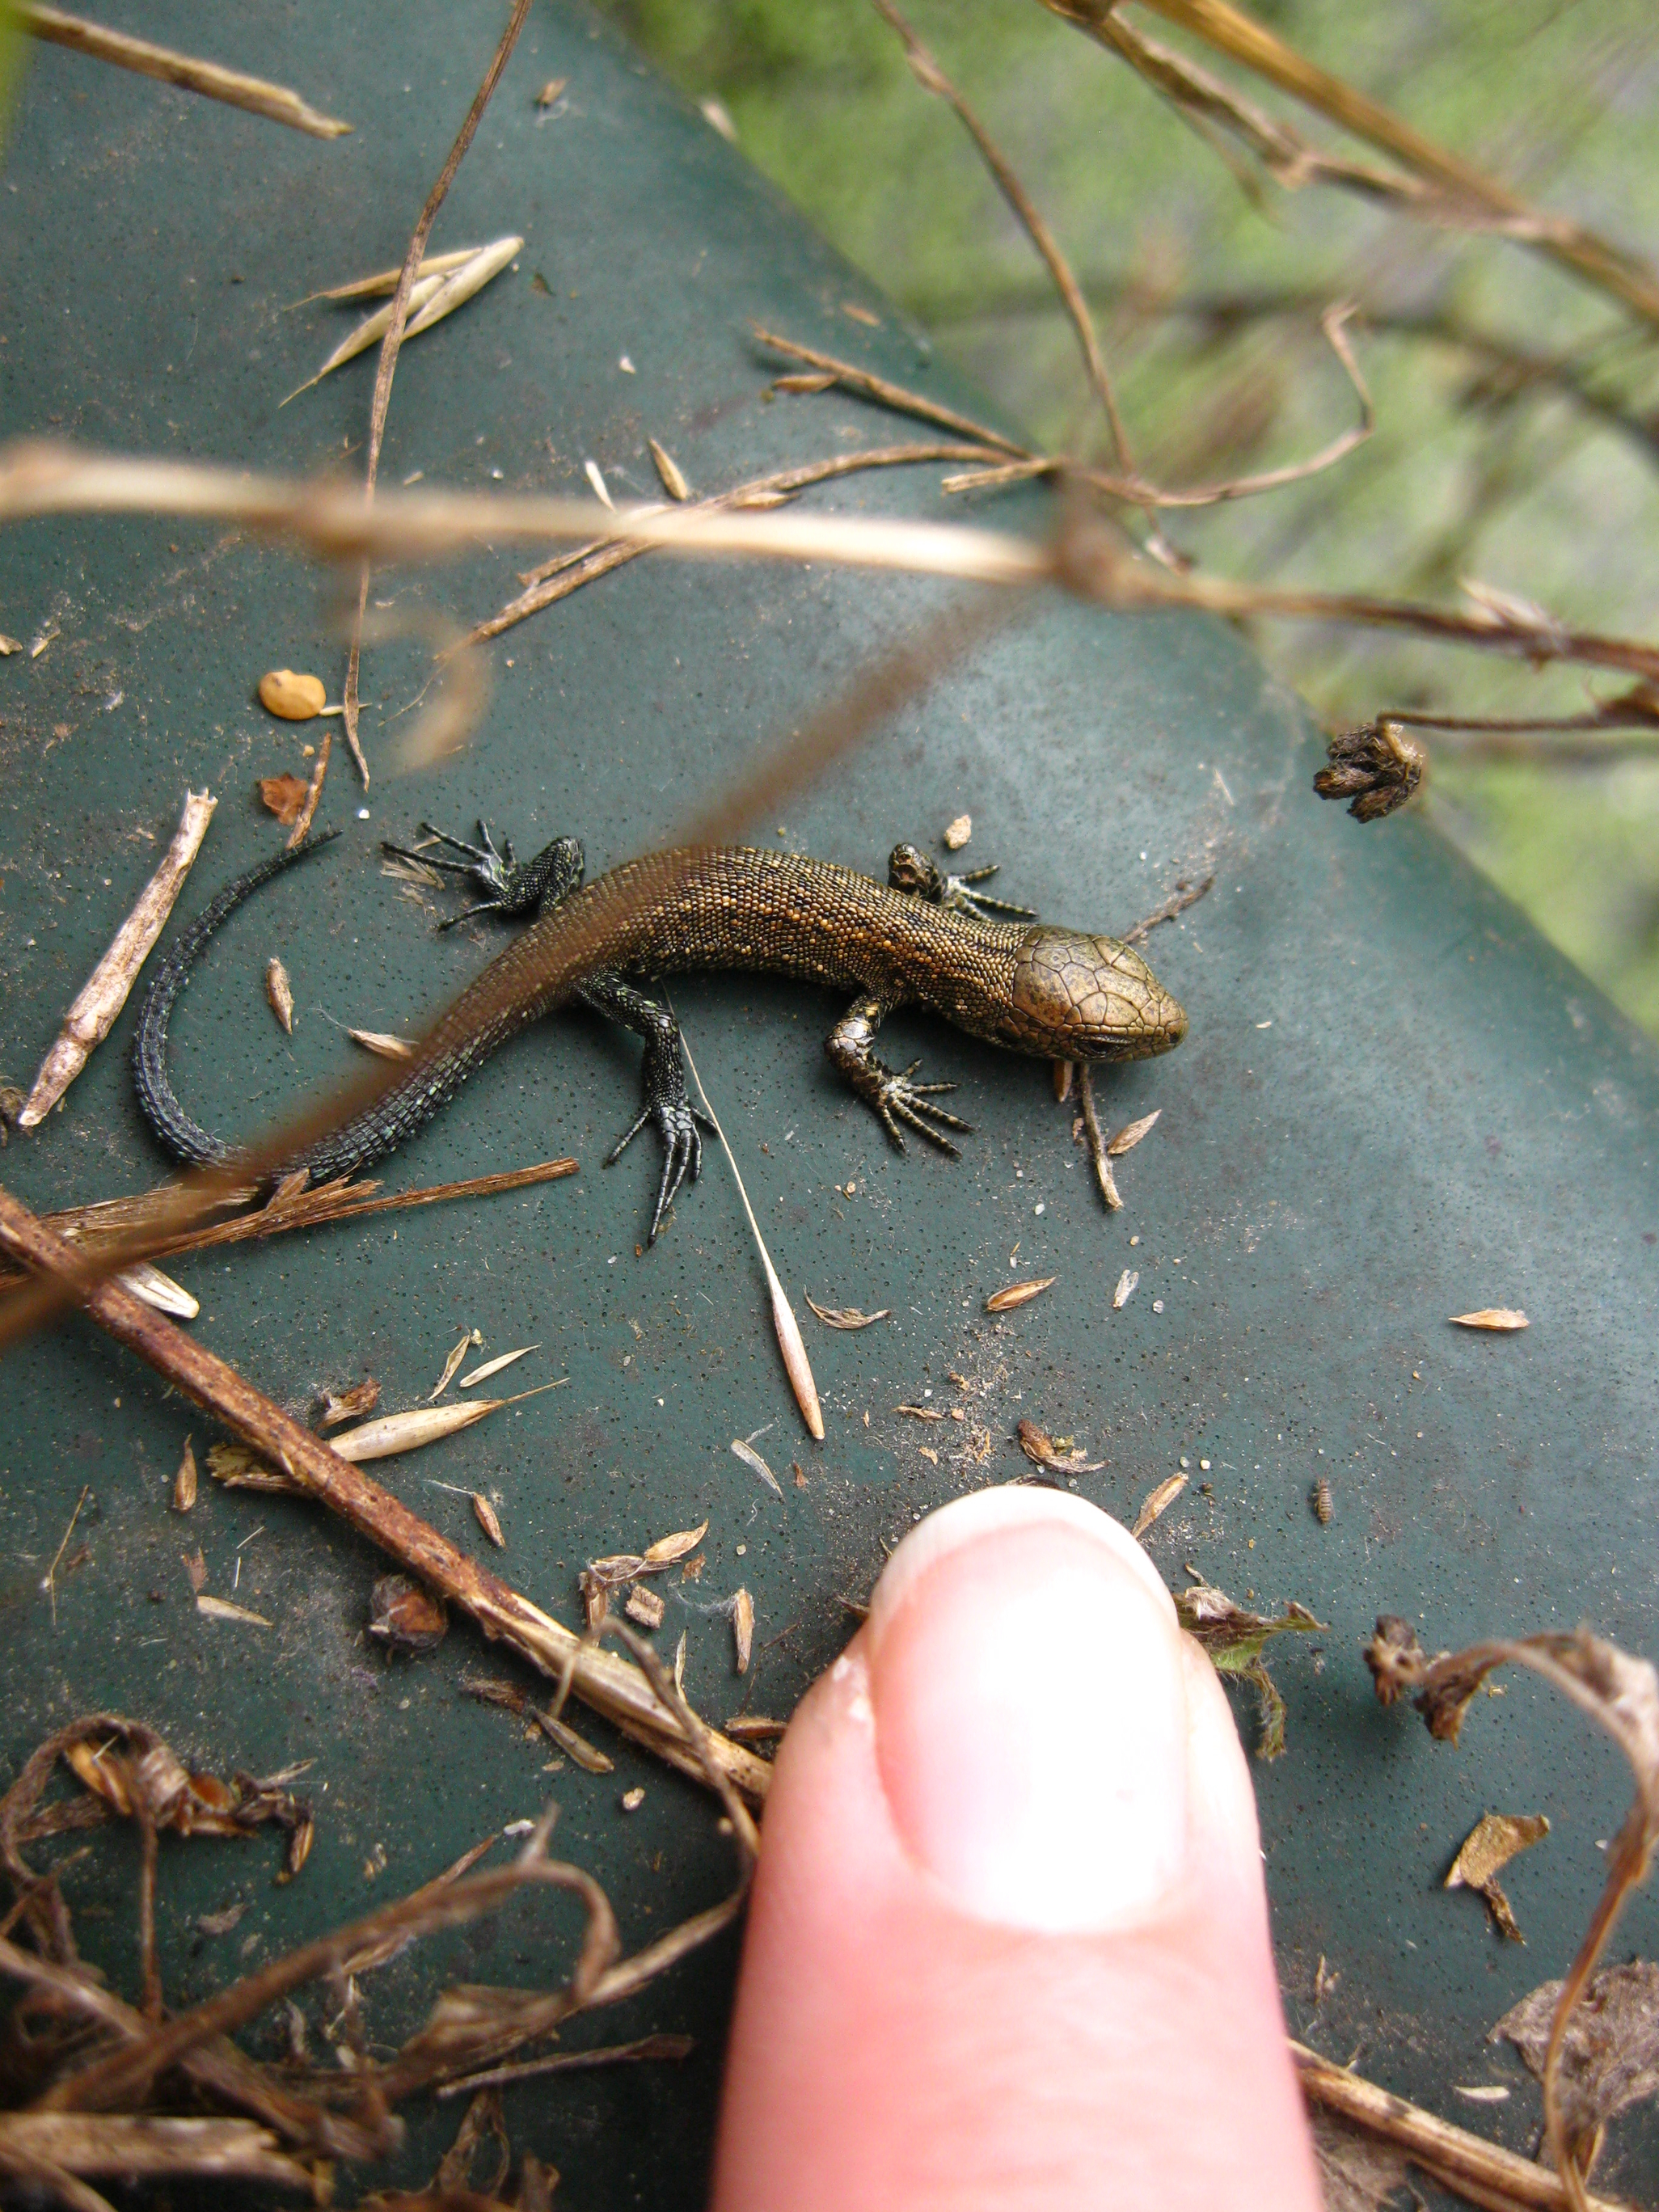 Baby common lizard